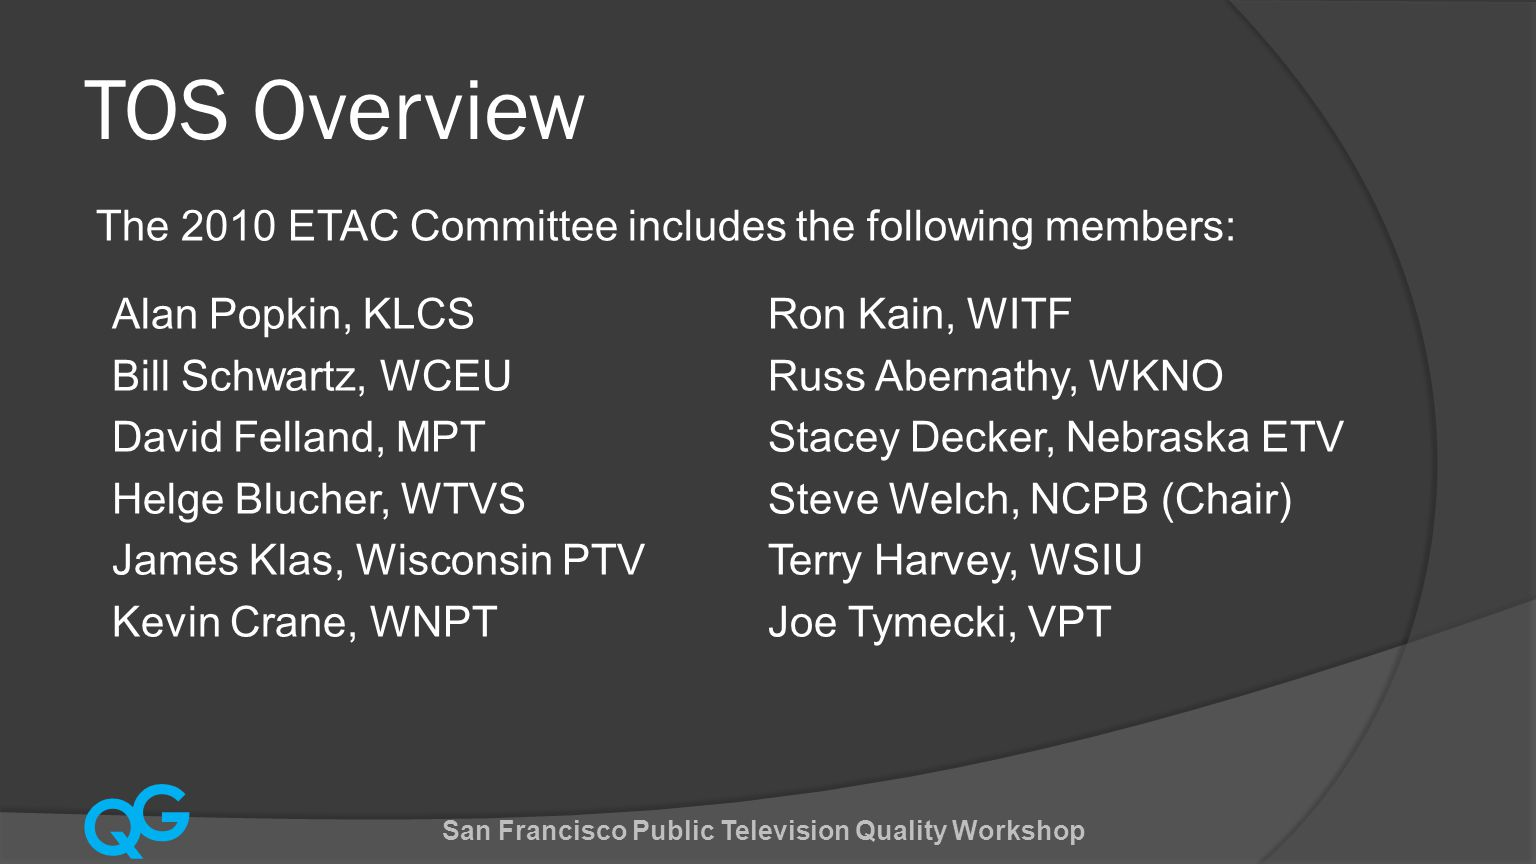 Q G TOS Overview The TOS 2010 Working Group included the following members San Francisco Public Television Quality Workshop Terry Harvey, WSIU (Chair) Bill Schwartz, WCEU Bruce Jacobs, TPT David Felland, MPT Gerry Field, APT Greg Tillou, NETA Kip Campbell, UNCTV Mike Norton, Wisconsin PTV Russ Abernathy, WKNO Steve Welch, NCPB Ernie Neumann, KQED/ NCPB Jim Kutzner, PBS (TOS Lead) Steve Scheel, PBS Wendy Allen, PBS Steve Wynn, PBS Stephen Francis, PBS